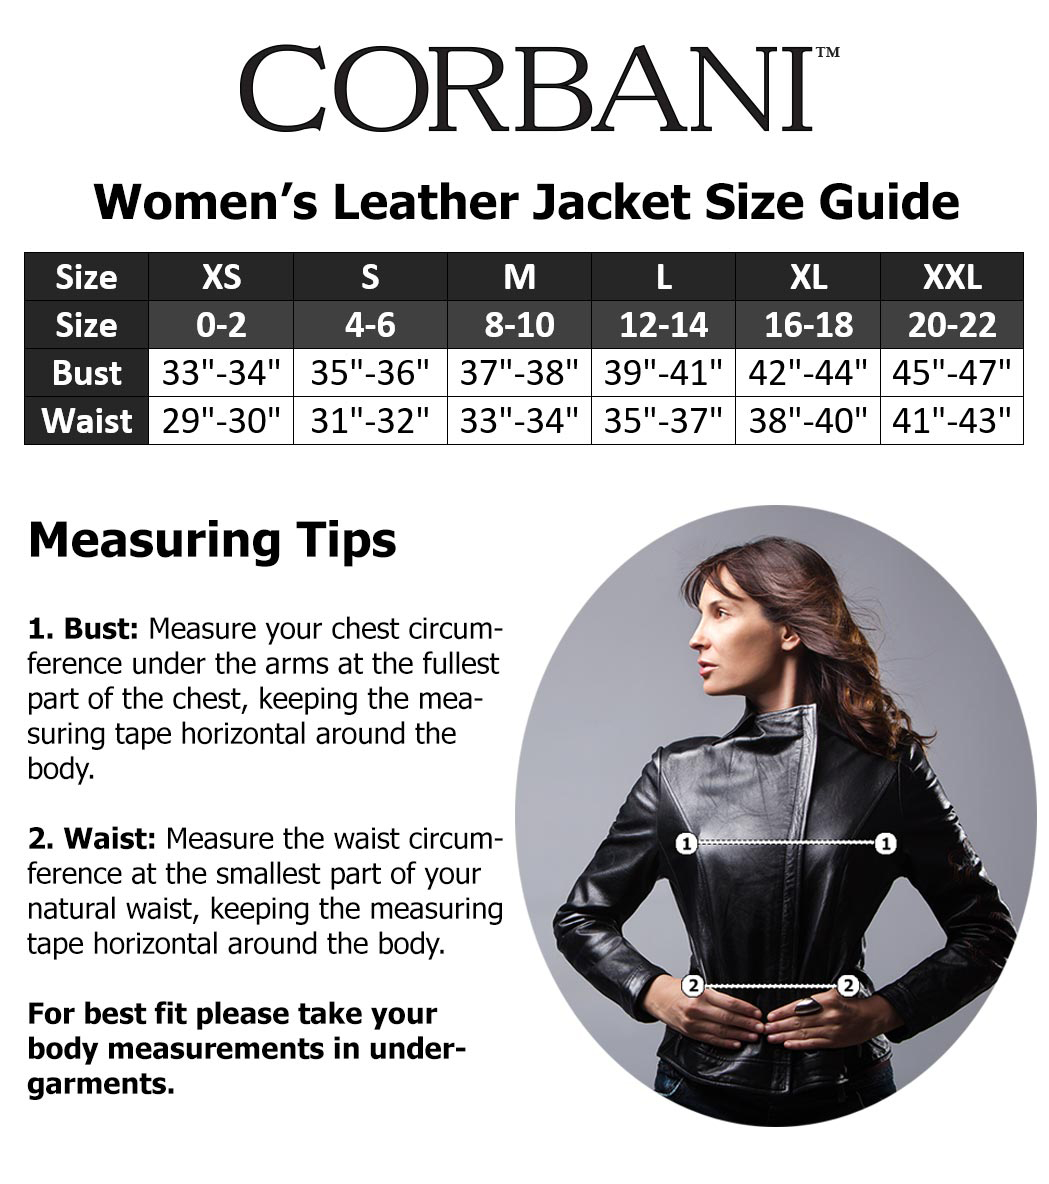 Corbnai-Women Customer Care